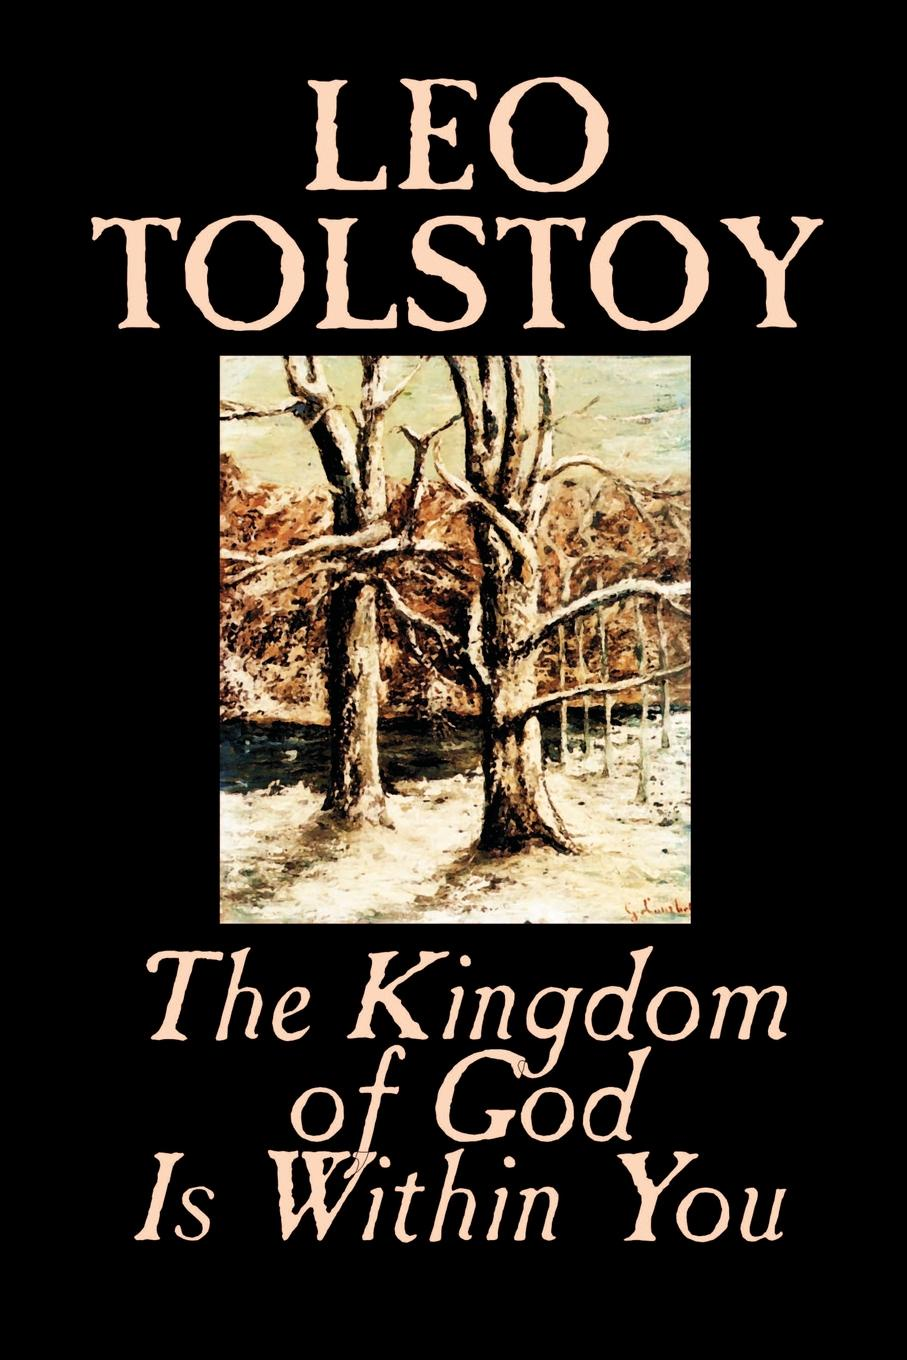 Leo Tolstoy, Constance Garnett The Kingdom of God Is Within You by Leo Tolstoy, Religion, Philosophy, Theology leo tolstoy fyodor mikhailovich dostoevsky embers of a revolution by leo tolstoy fiction classics literary